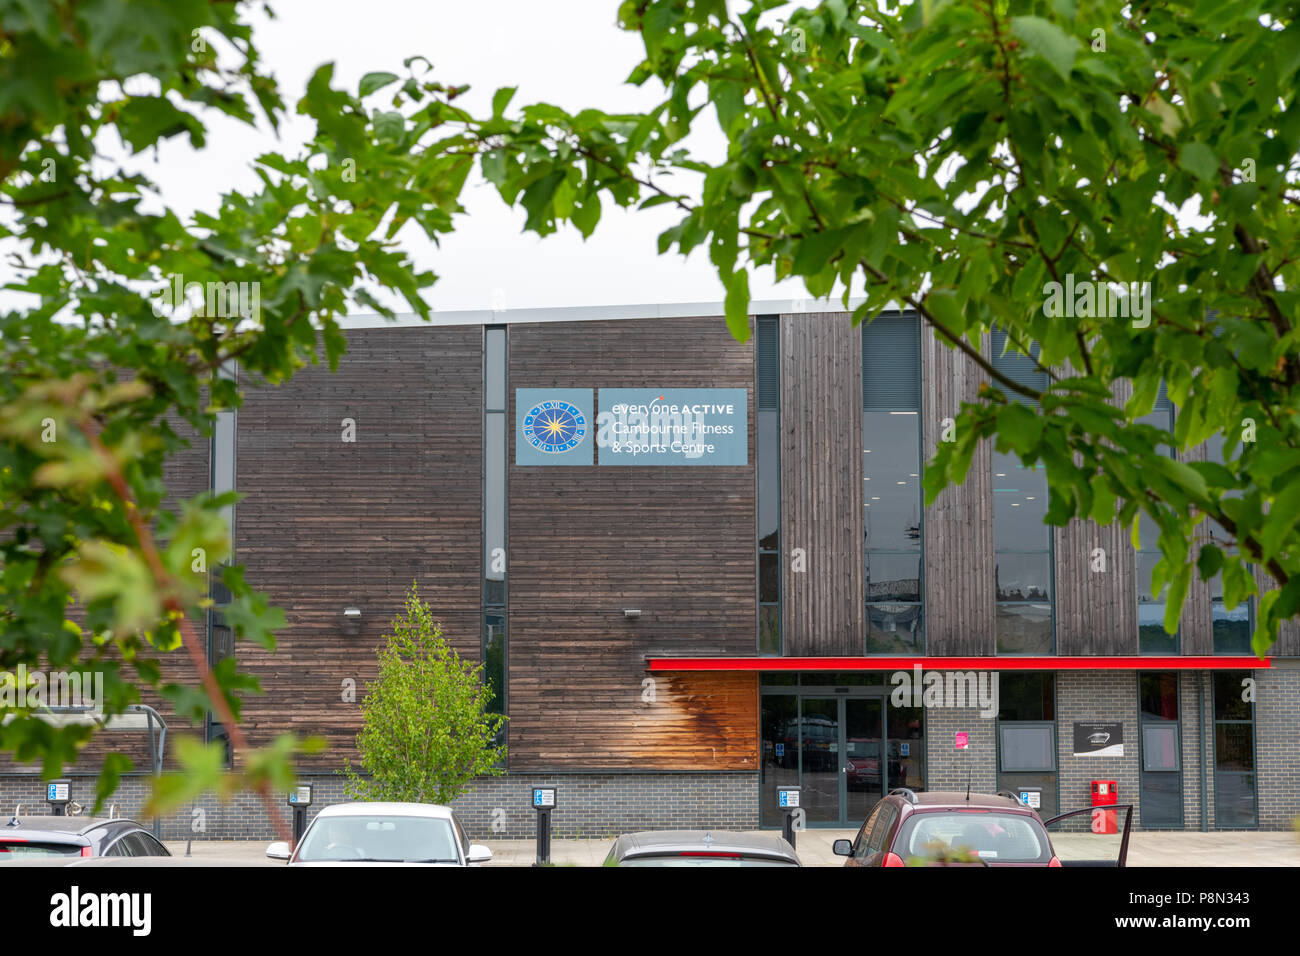 Everyone Active Fitness and sports centre Cambourne, South Cambridgeshire, UK - Stock Image